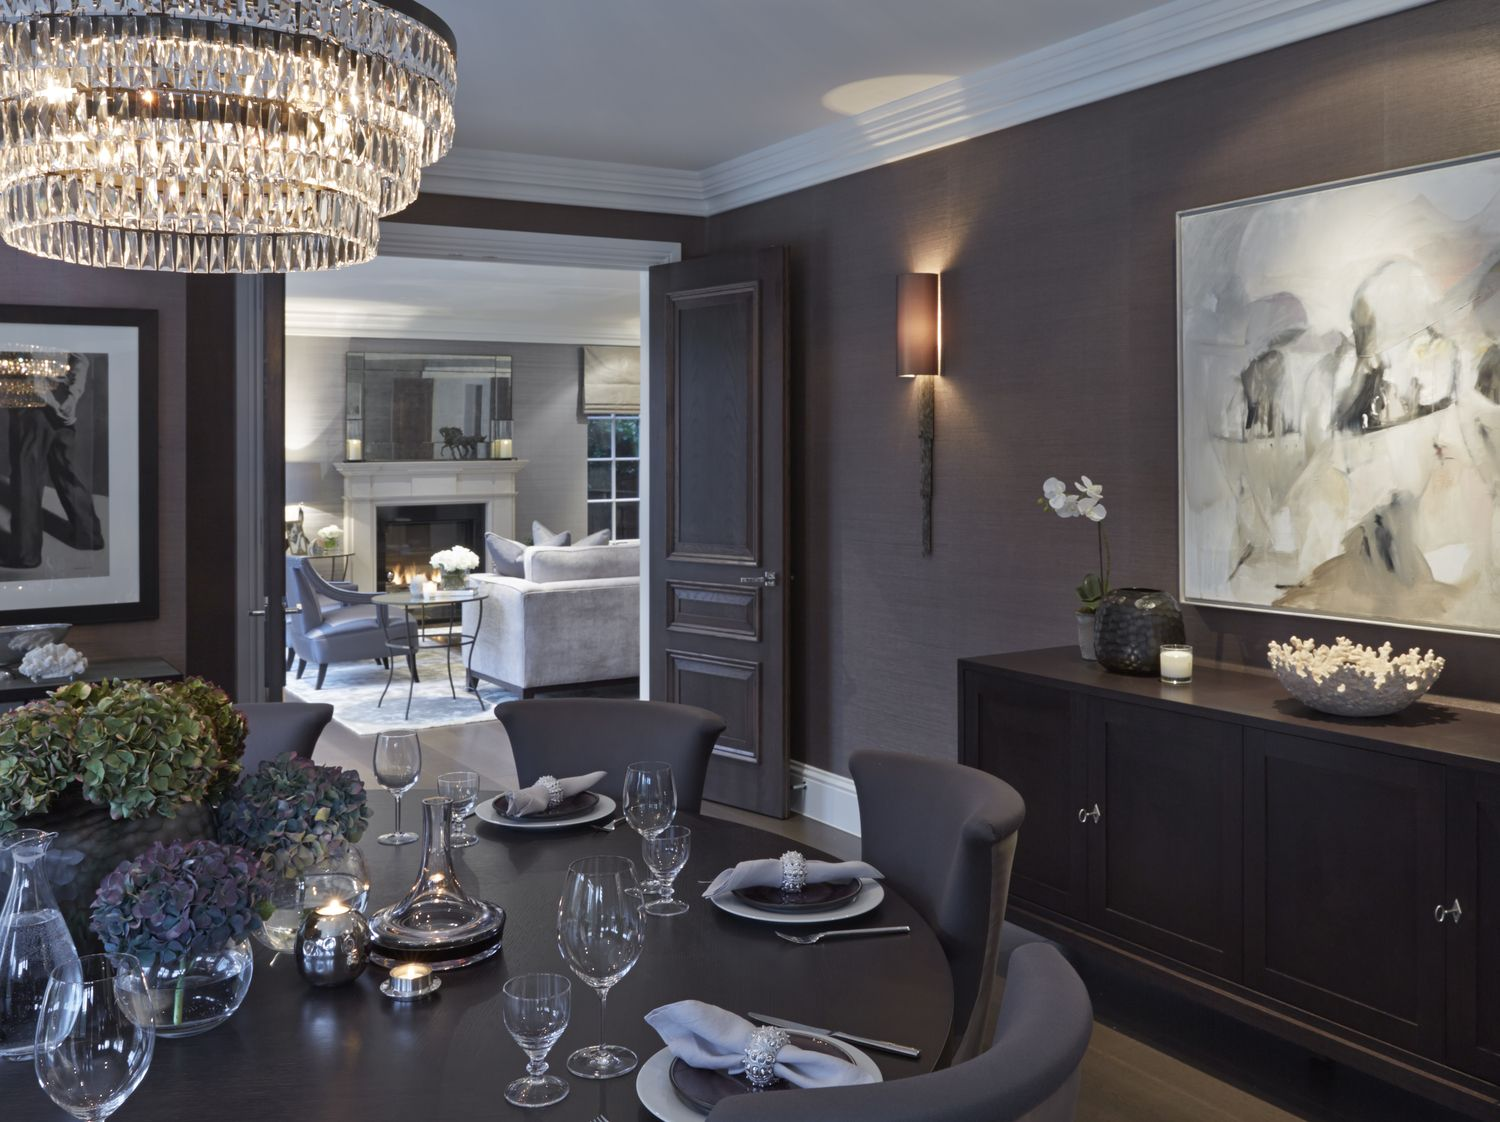 surrey luxury interior design london surrey sophie